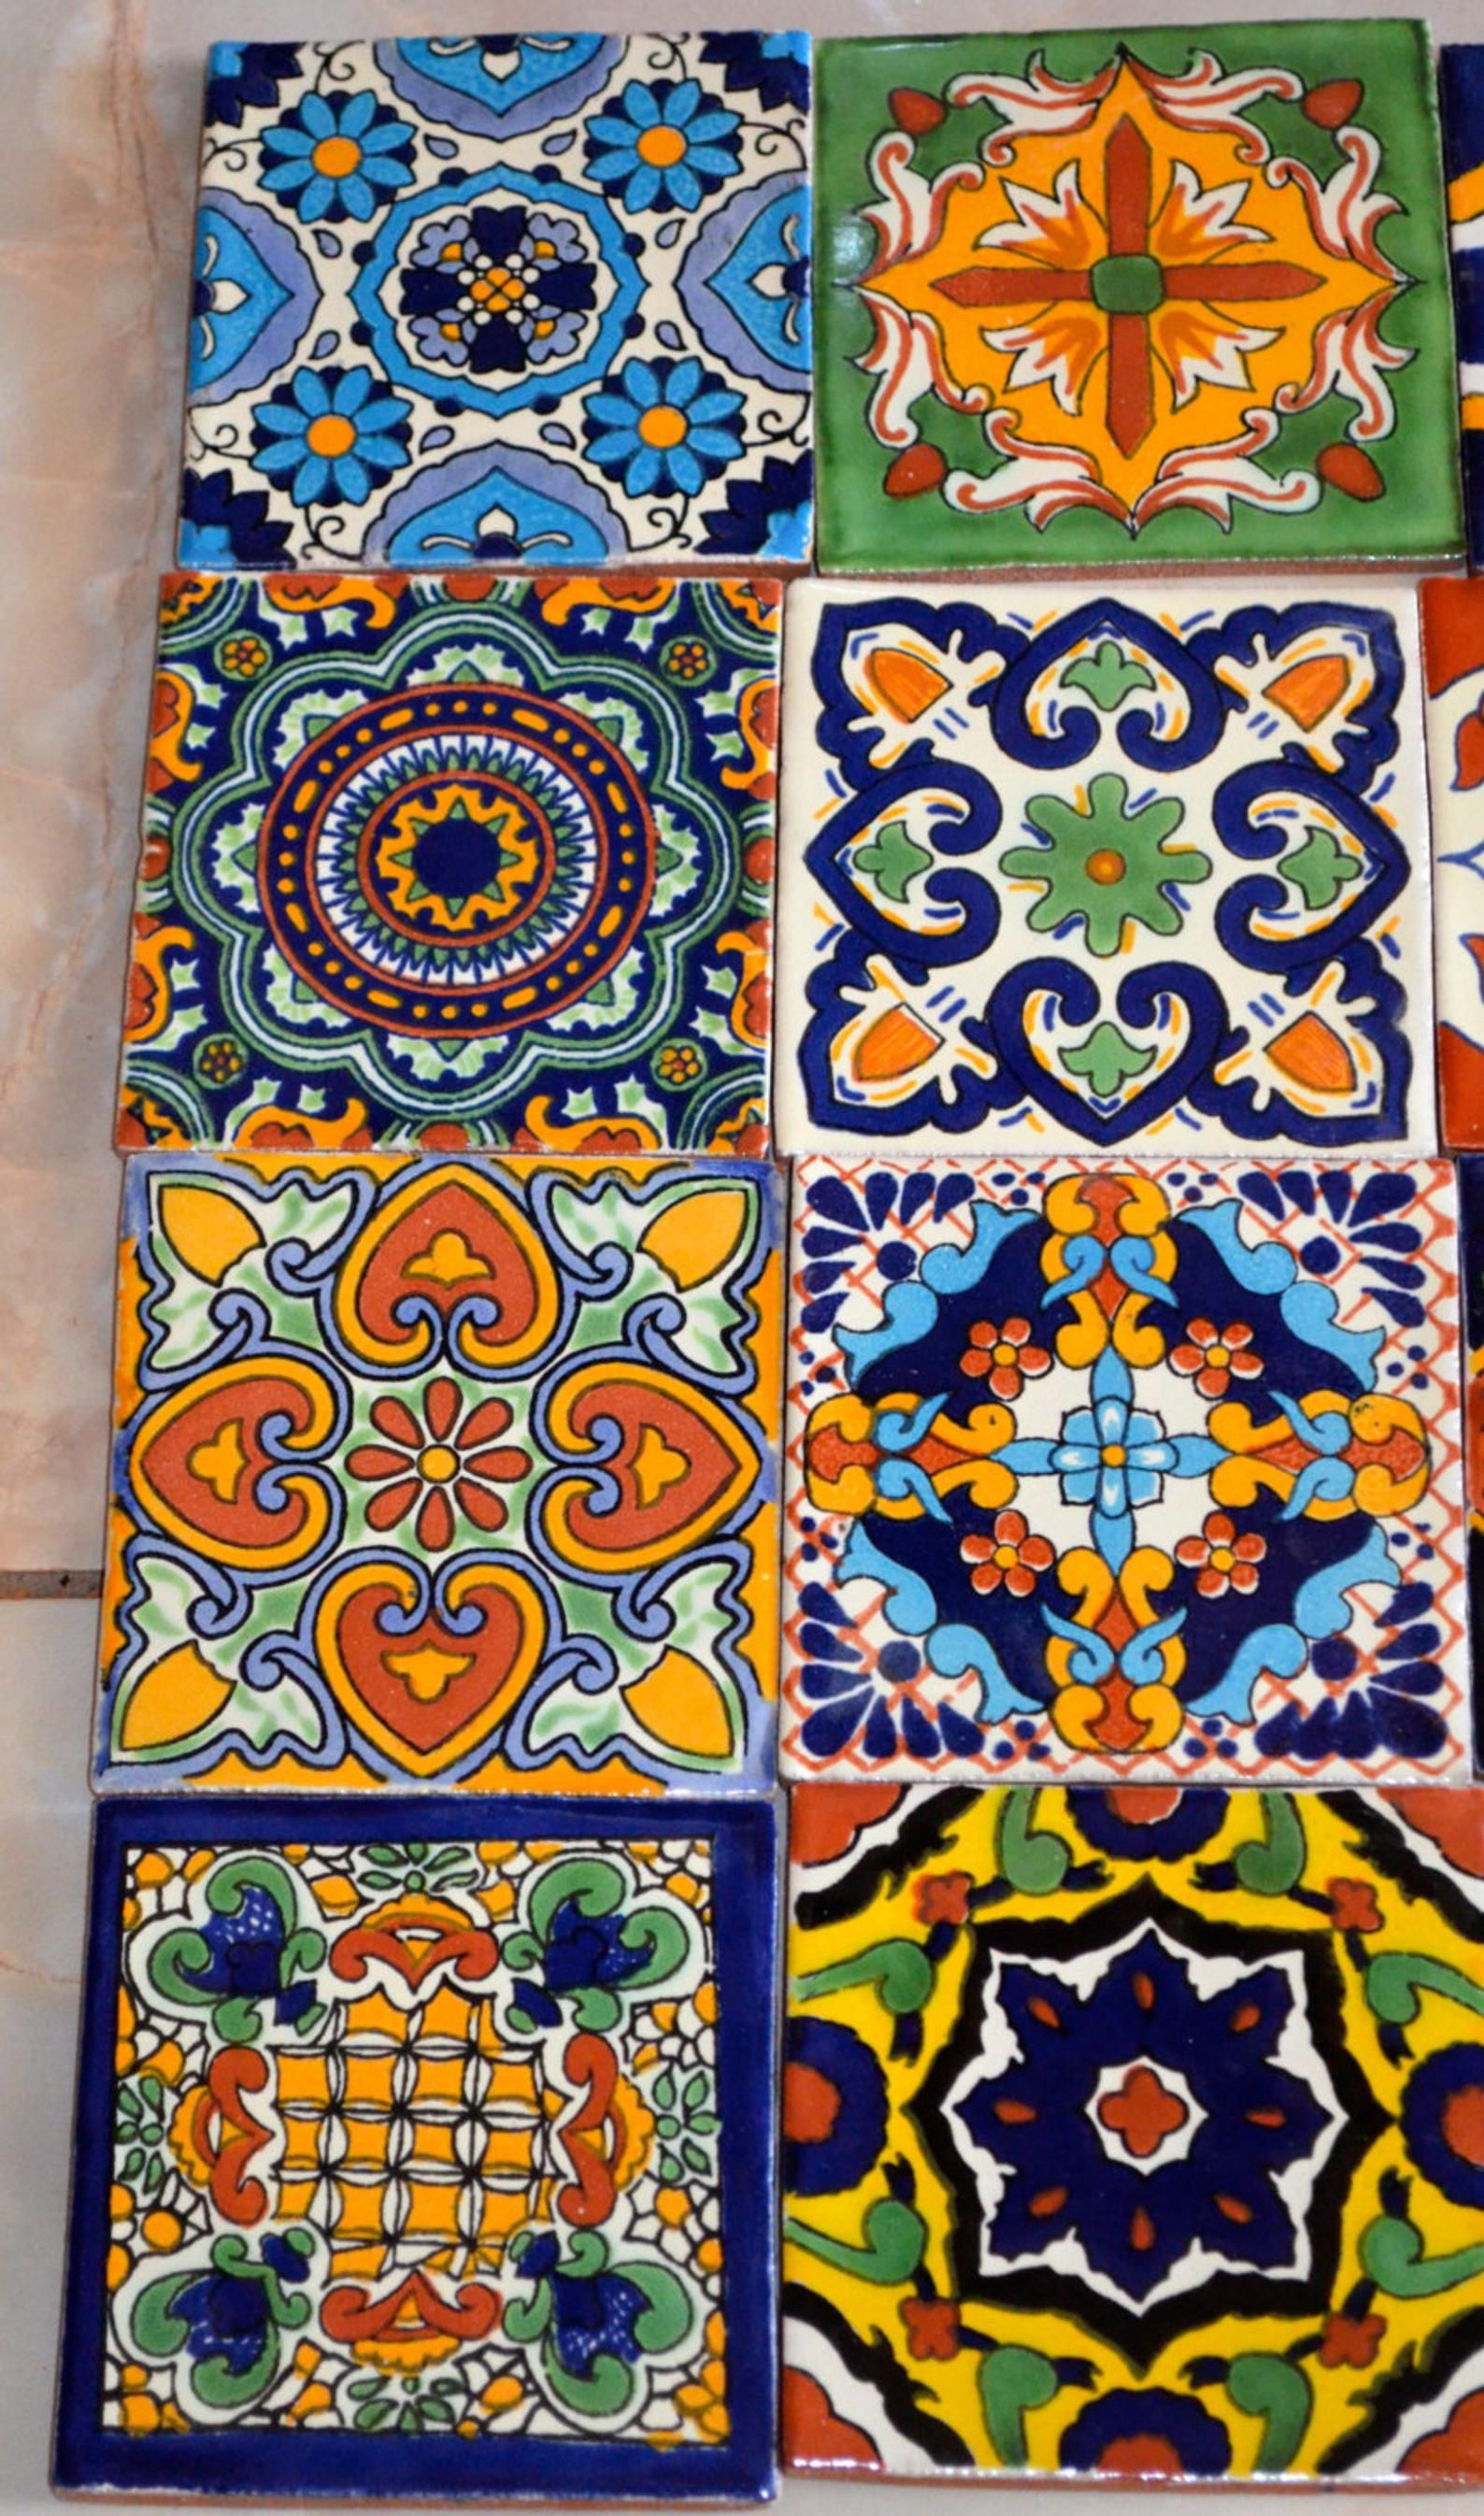 12 Mexican Talavera Tiles Hand Painted 4 X 4 In 2020 Talavera Tiles Mexican Talavera Painting Tile